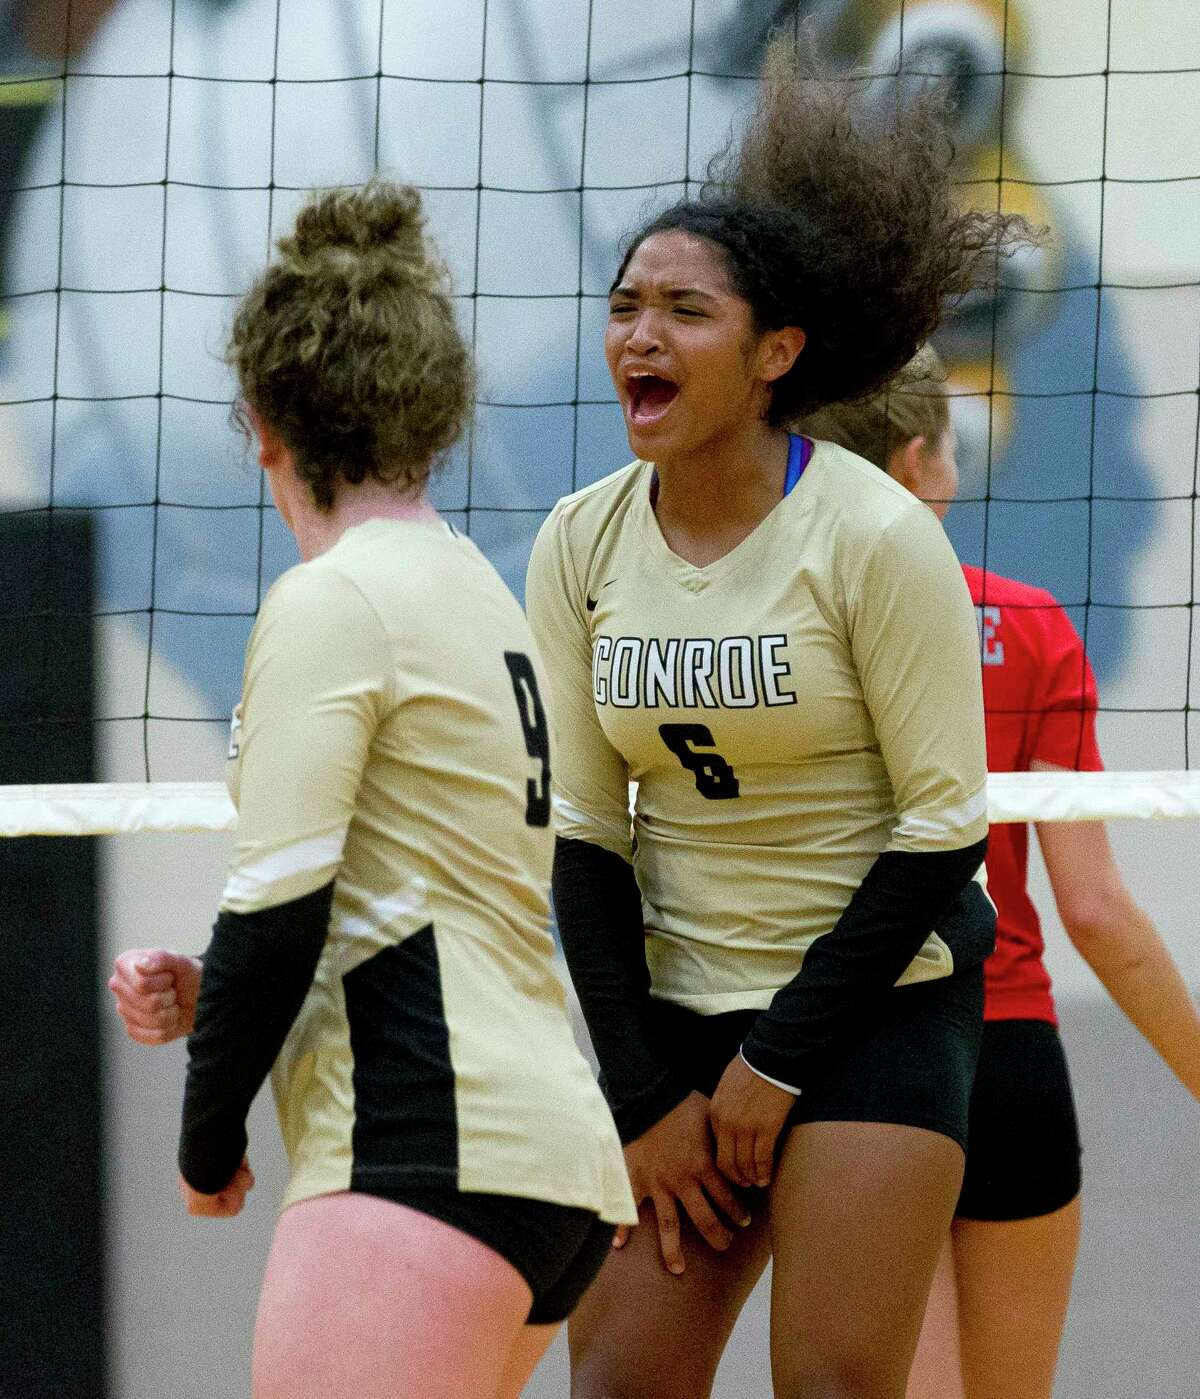 Conroe's Jznae Kim (6) celebrates a point during the first set of a District 12-6A volleyball match at Conroe High School, Tuesday, Sept. 19, 2017, in Conroe.